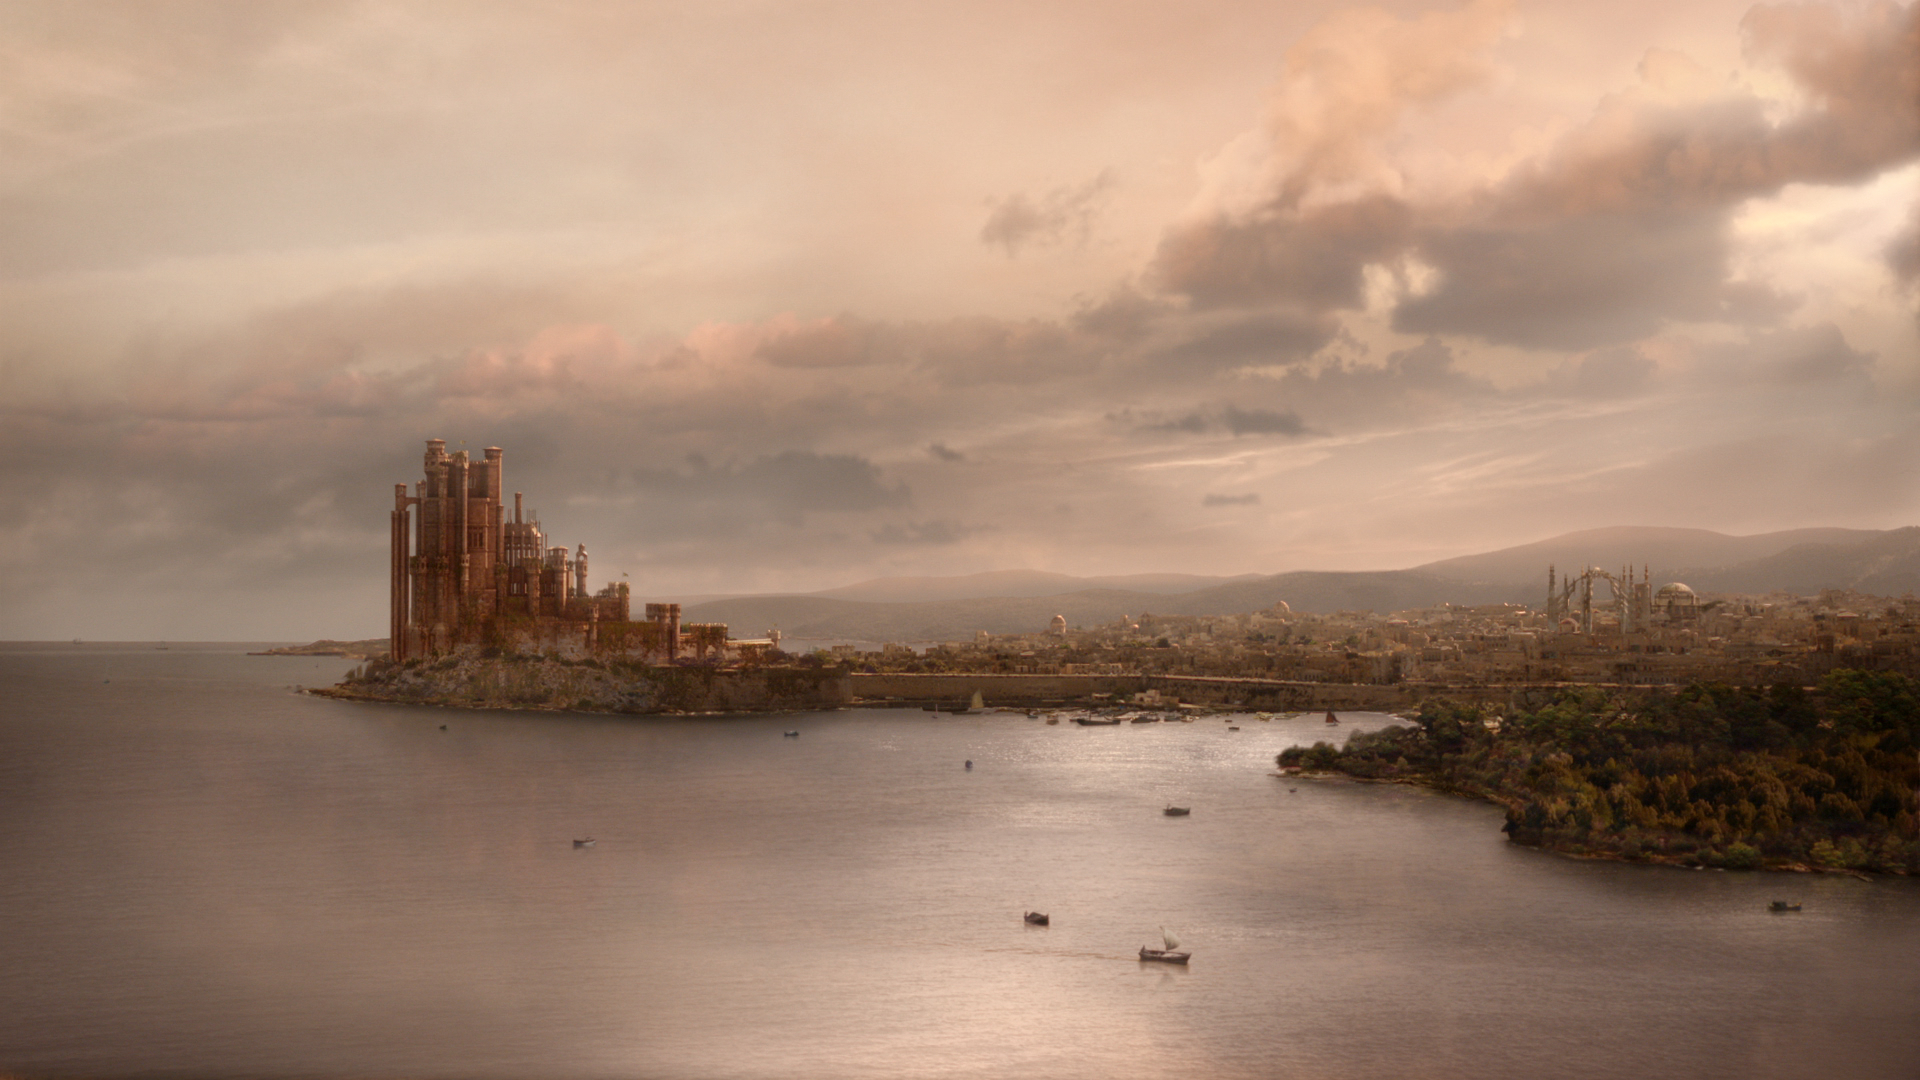 Wallpapers hd de Game of thrones